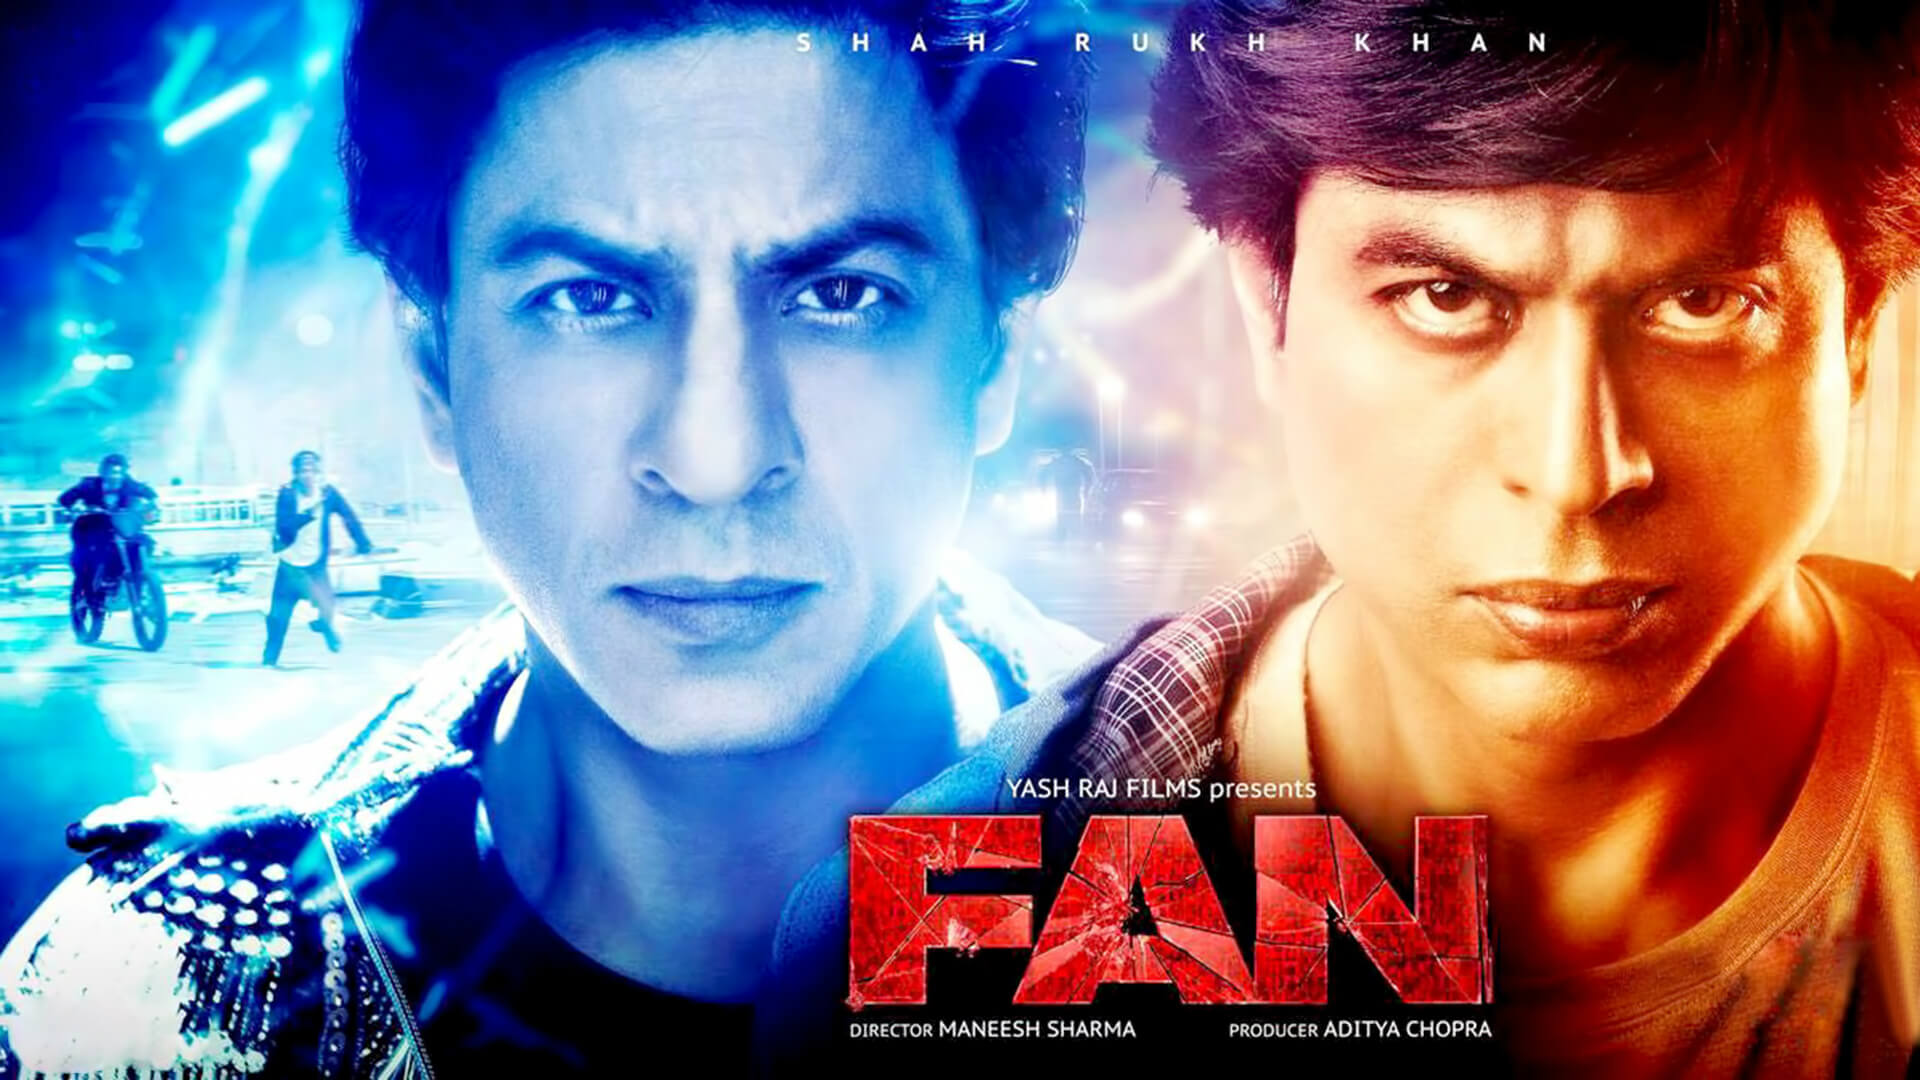 Fan Movie Poster HD Wallpaper Shah Rukh Khan